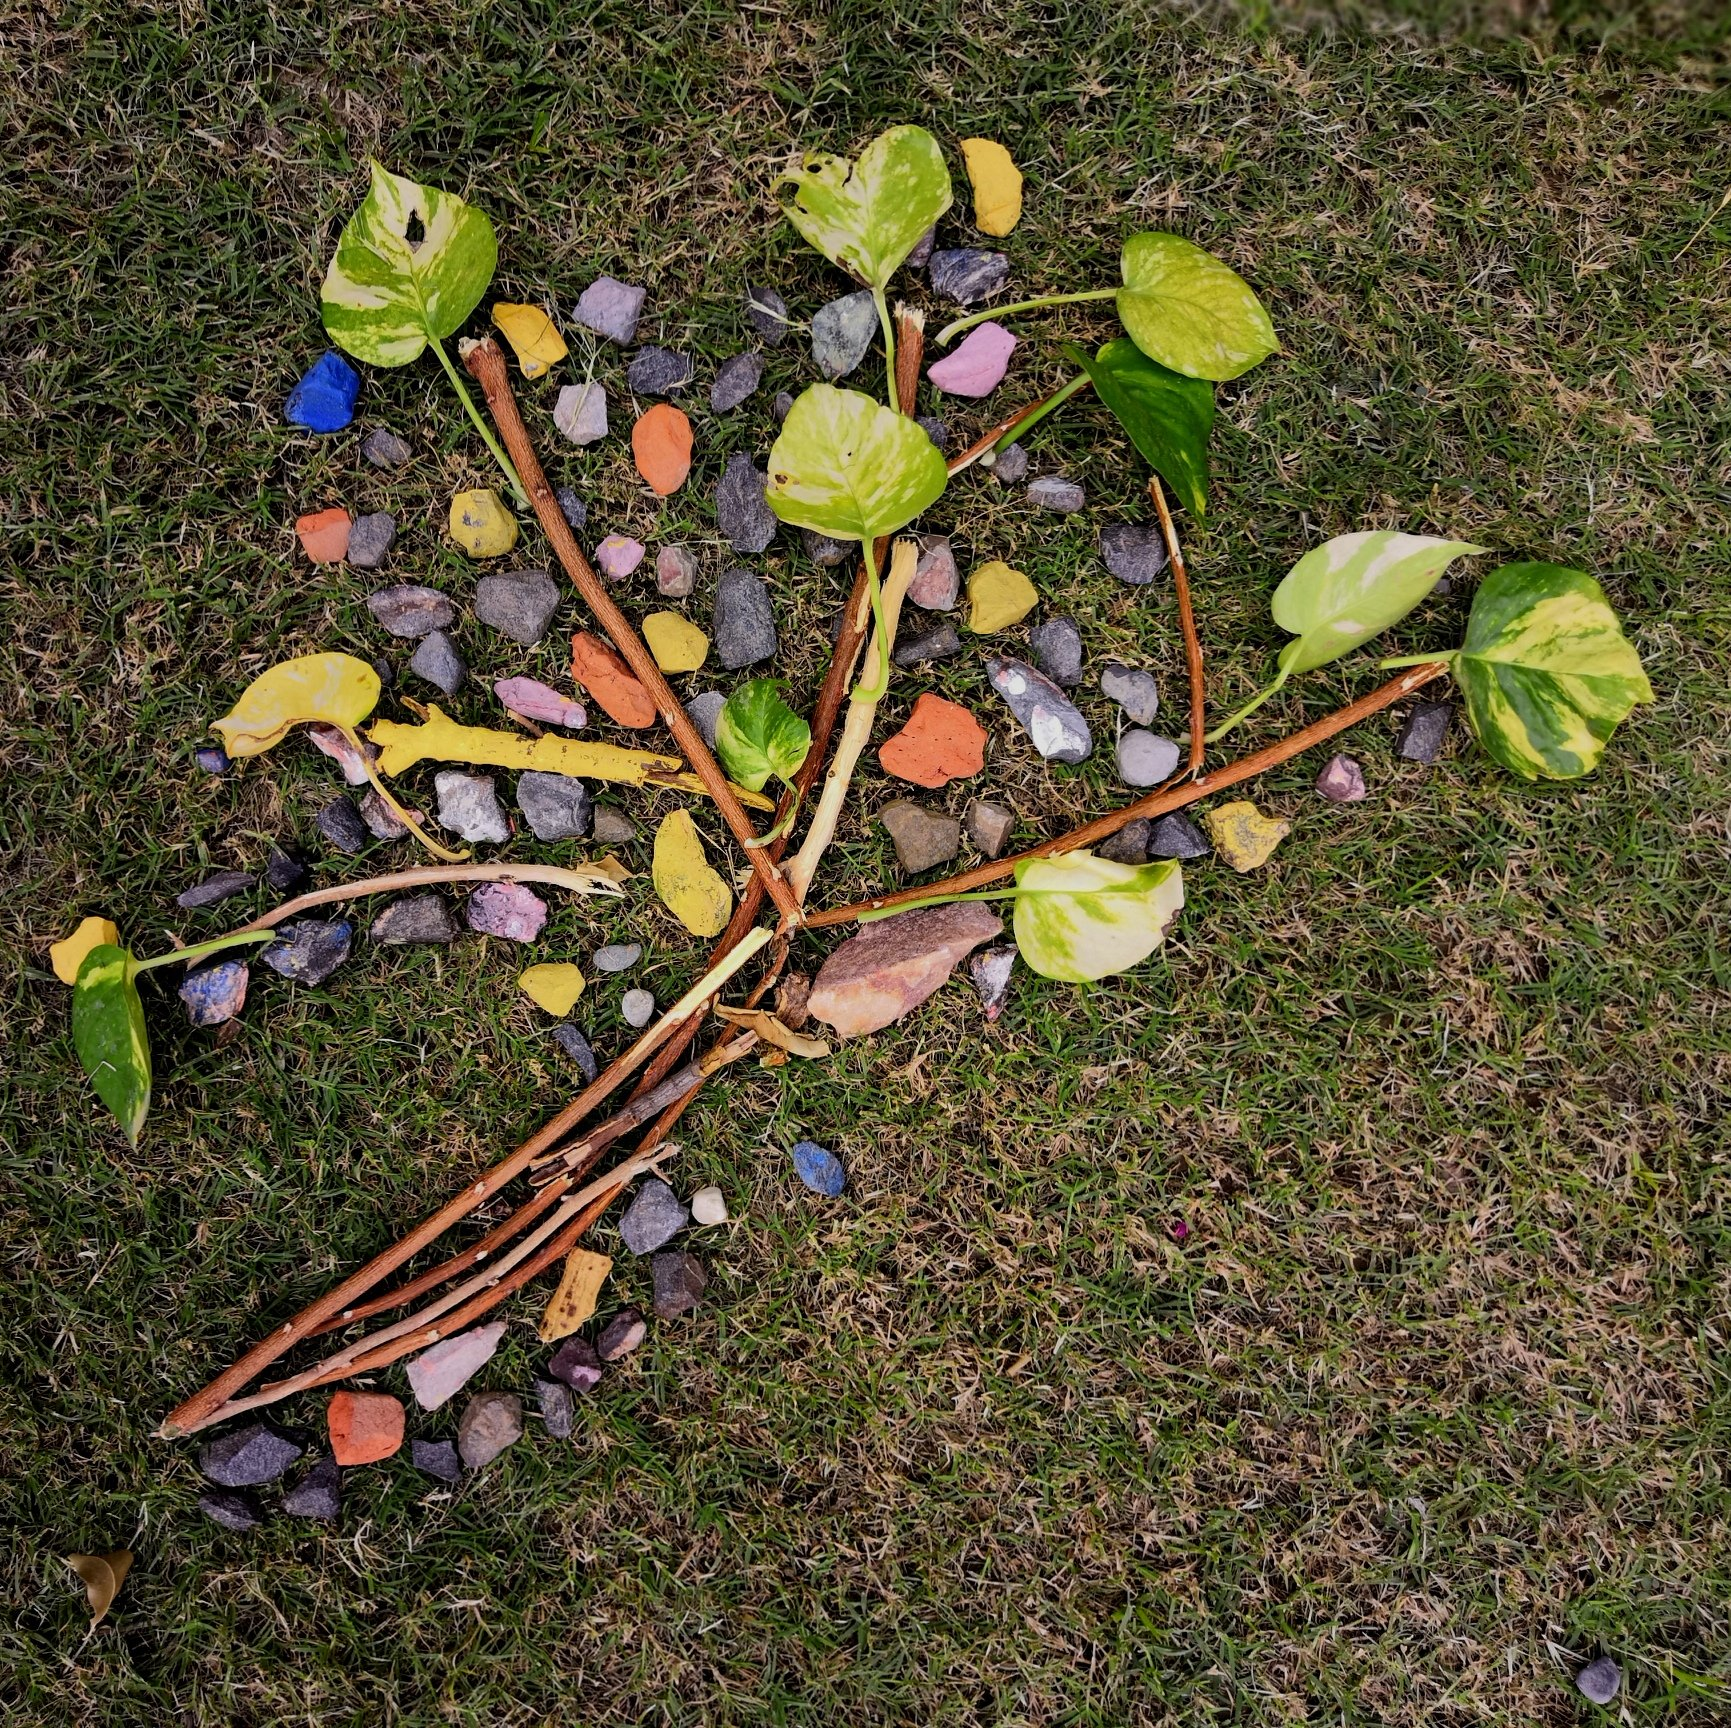 Nature's loose parts